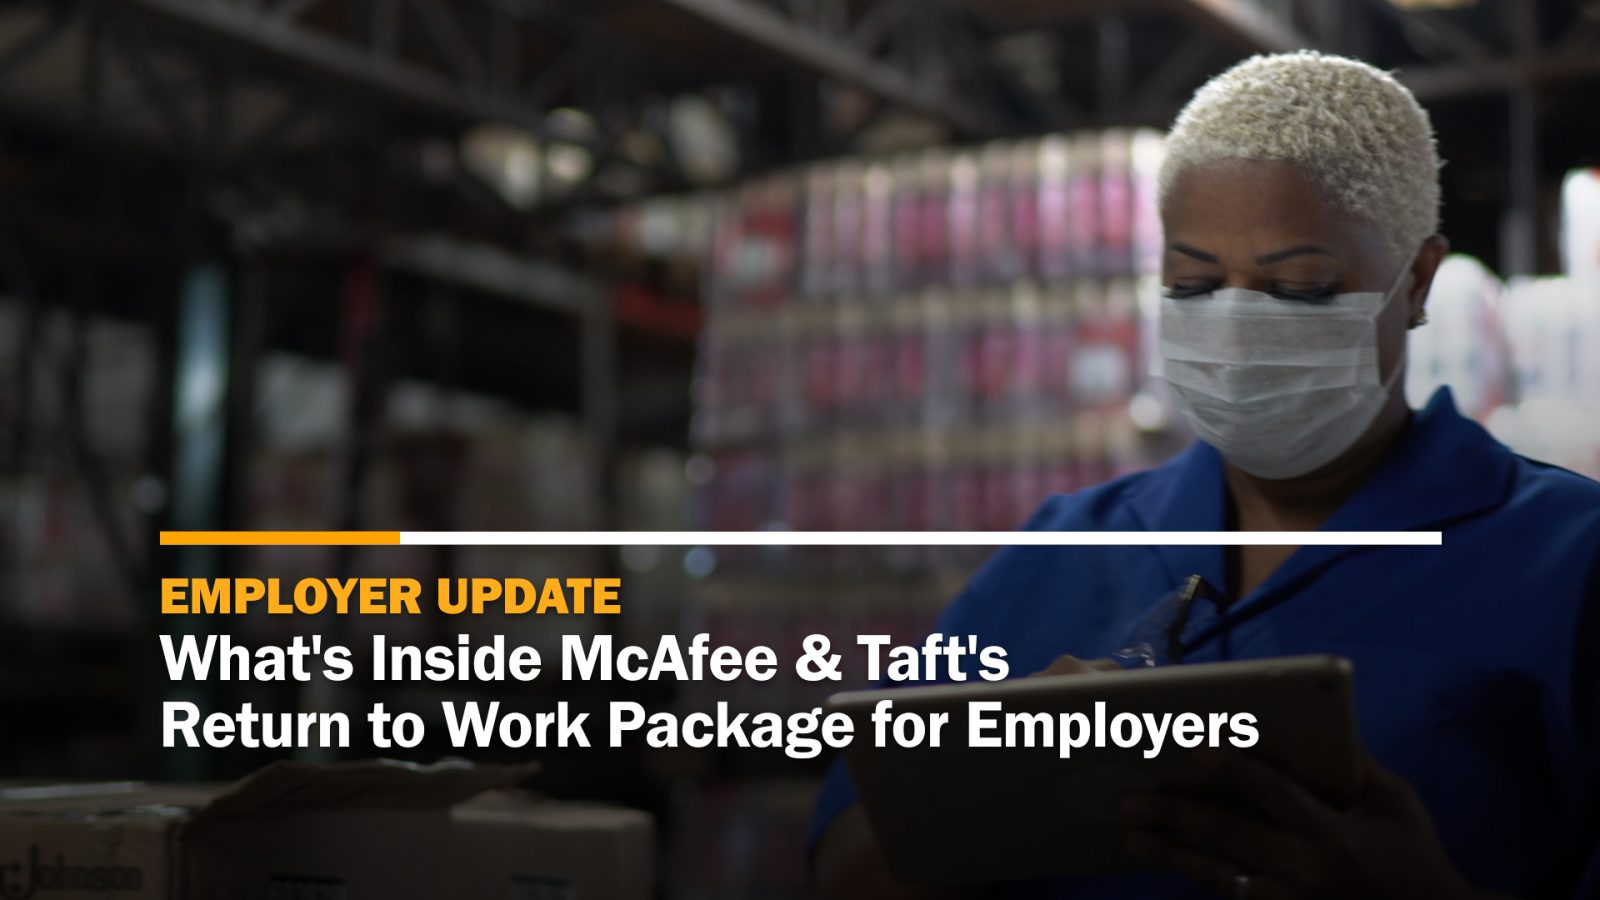 What's Inside McAfee & Taft's Return to Work Package for Employers